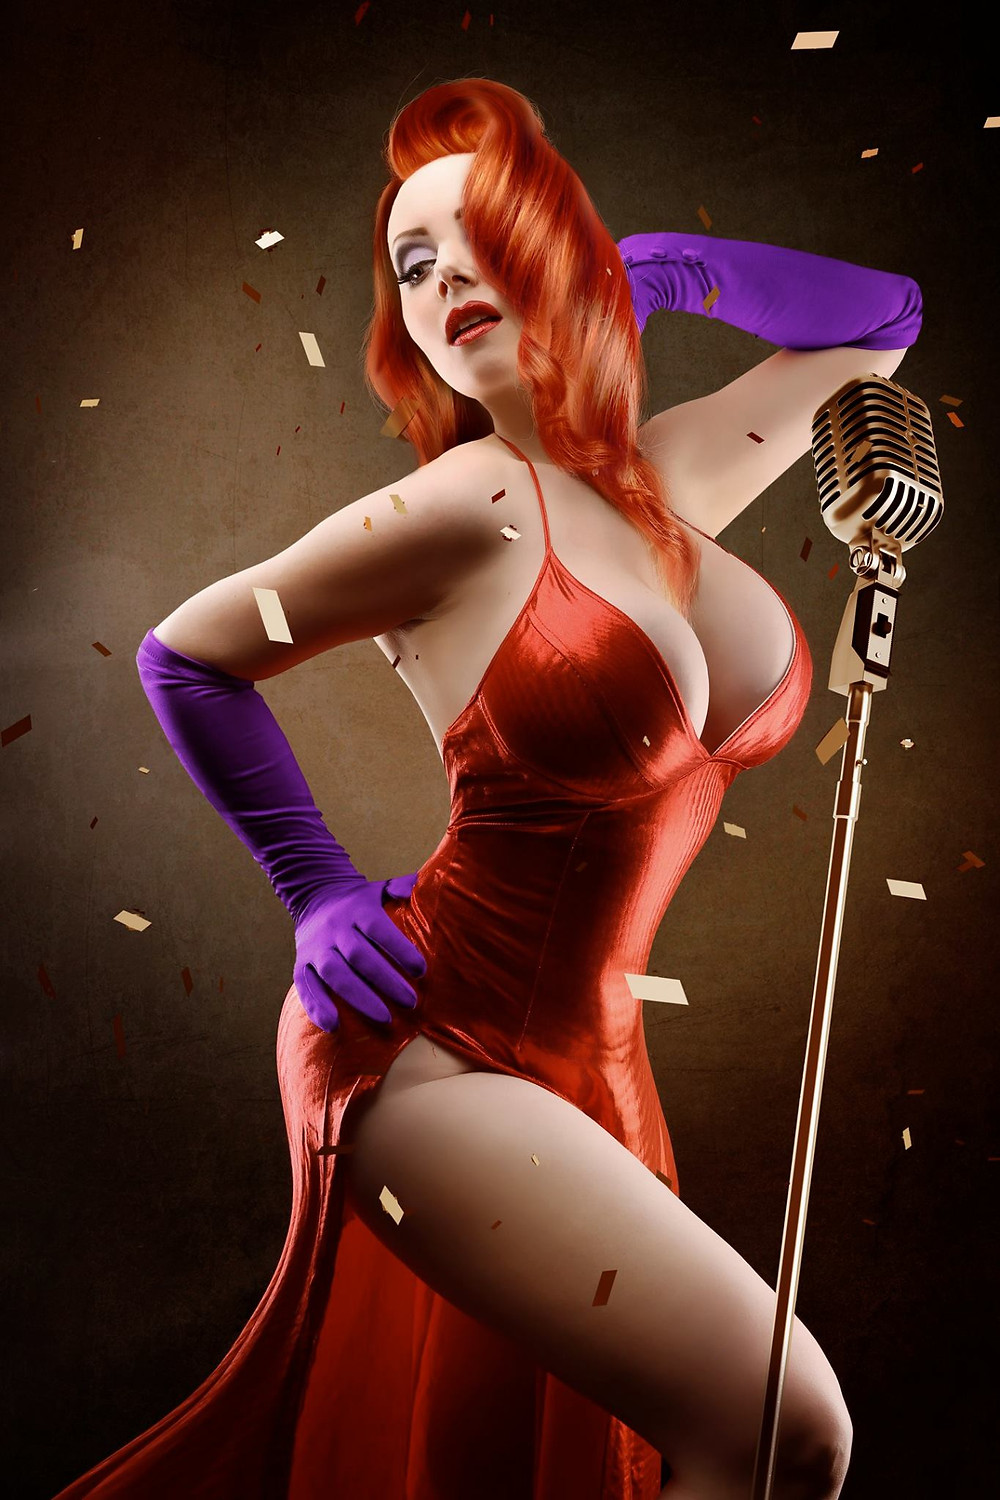 Jessica Rabbit Cosplay Pinup | Model: October Divine | By Chrissy Sparks at DOLLHOUSE